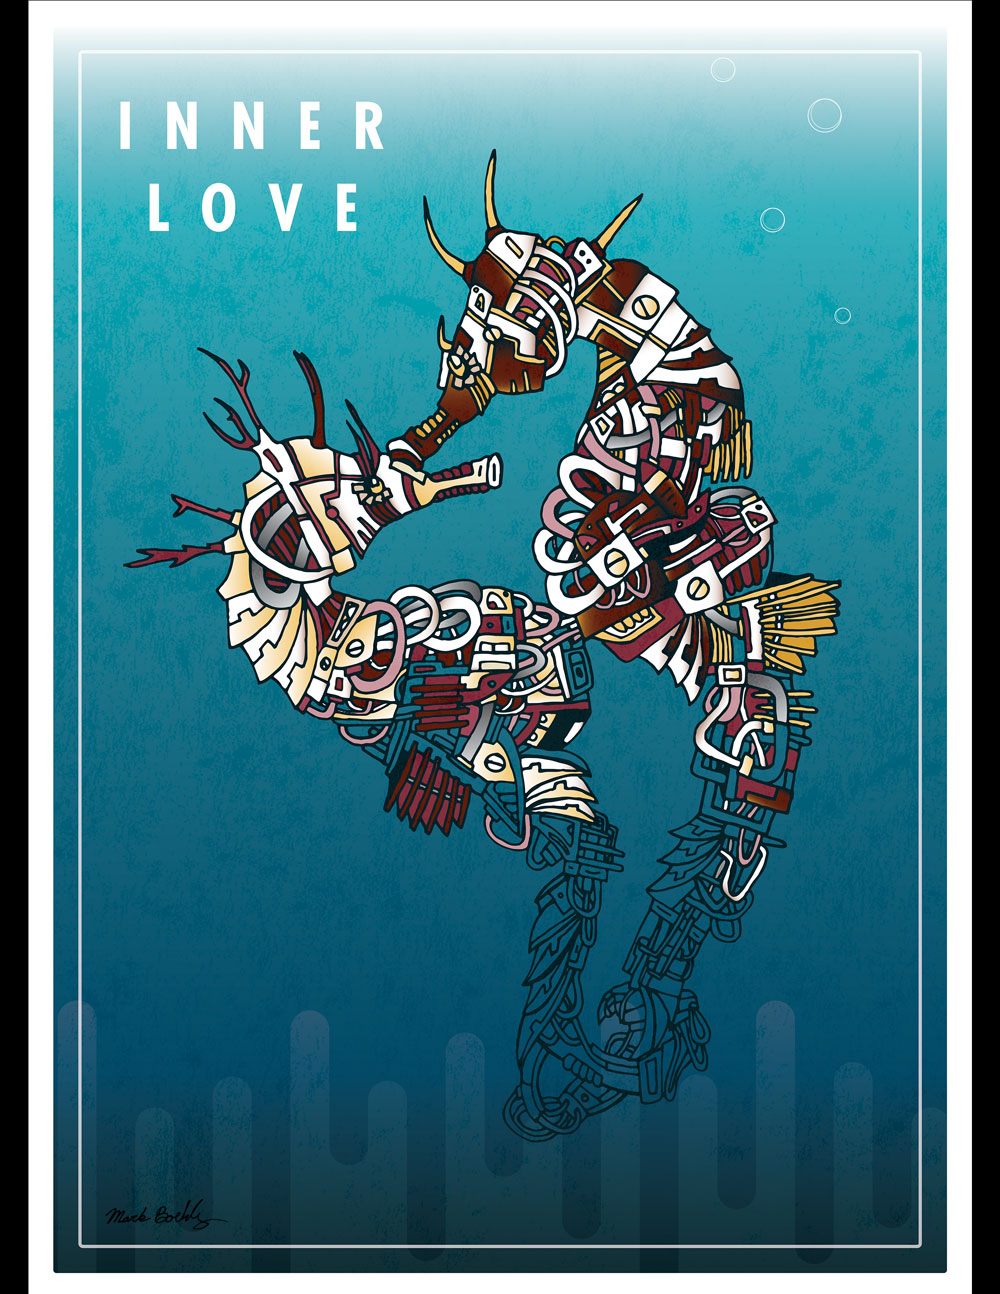 Inner Love Seahorse - Creature Collection - Illustrated by Mark Sheldon Boehly - Graphicsbyte Creative